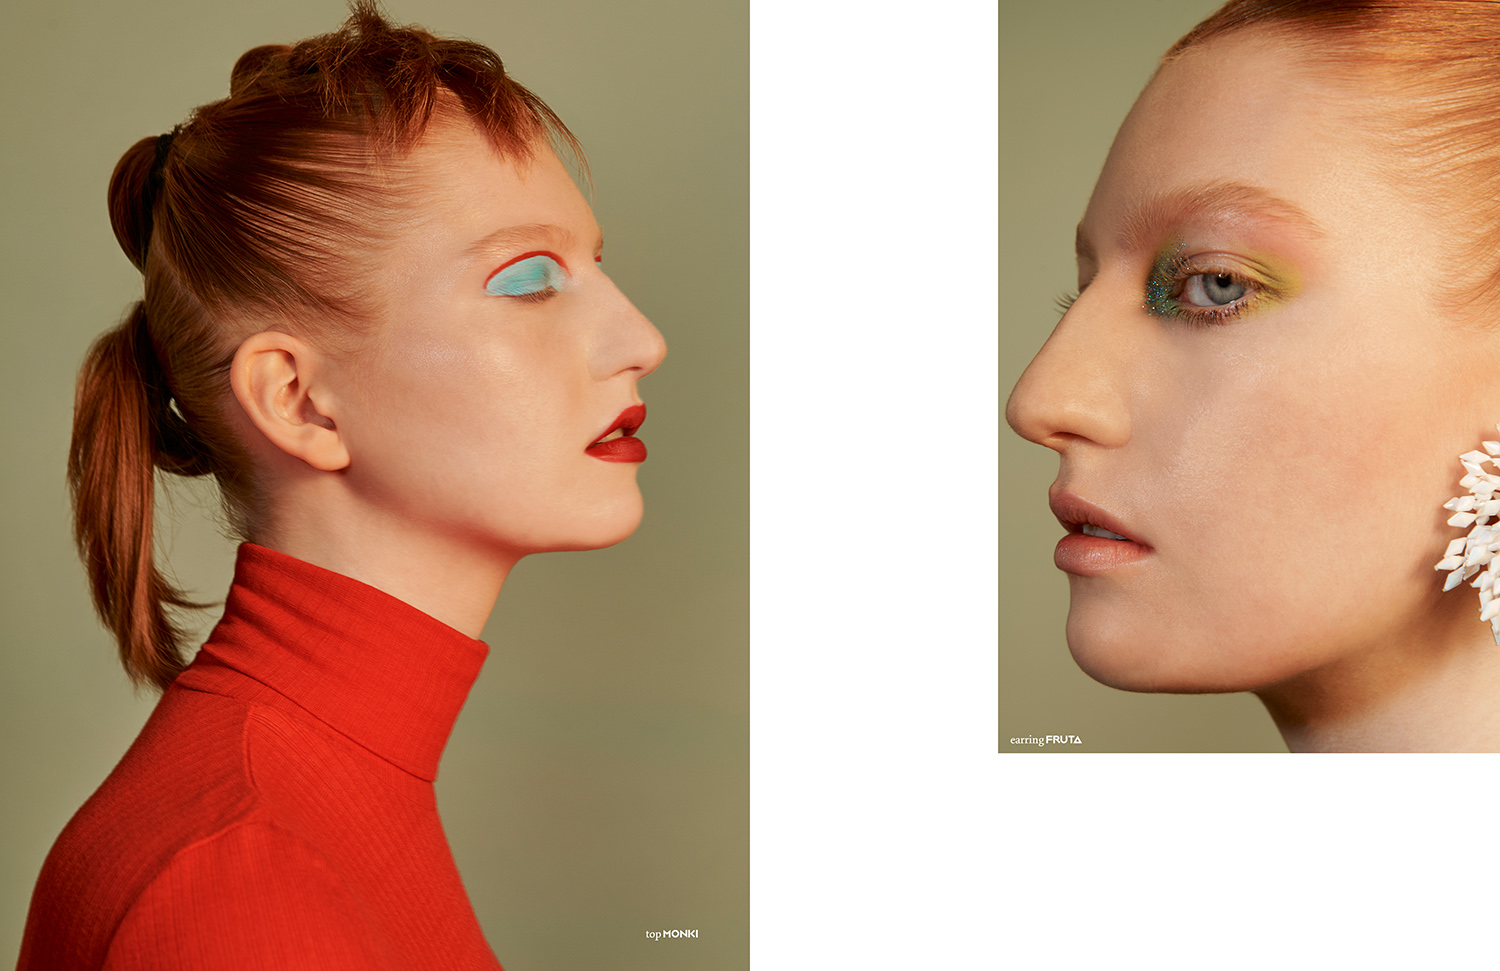 This PIBE online exclusive has been produced by:  Photography / Elliott Wilcox Styling / Yeon You Make up / Marie Bruce using Mac Cosmetics Hair / Akiko Kawasaki using Bumble and Bumble Model / Ella Kitson @Linden Staub